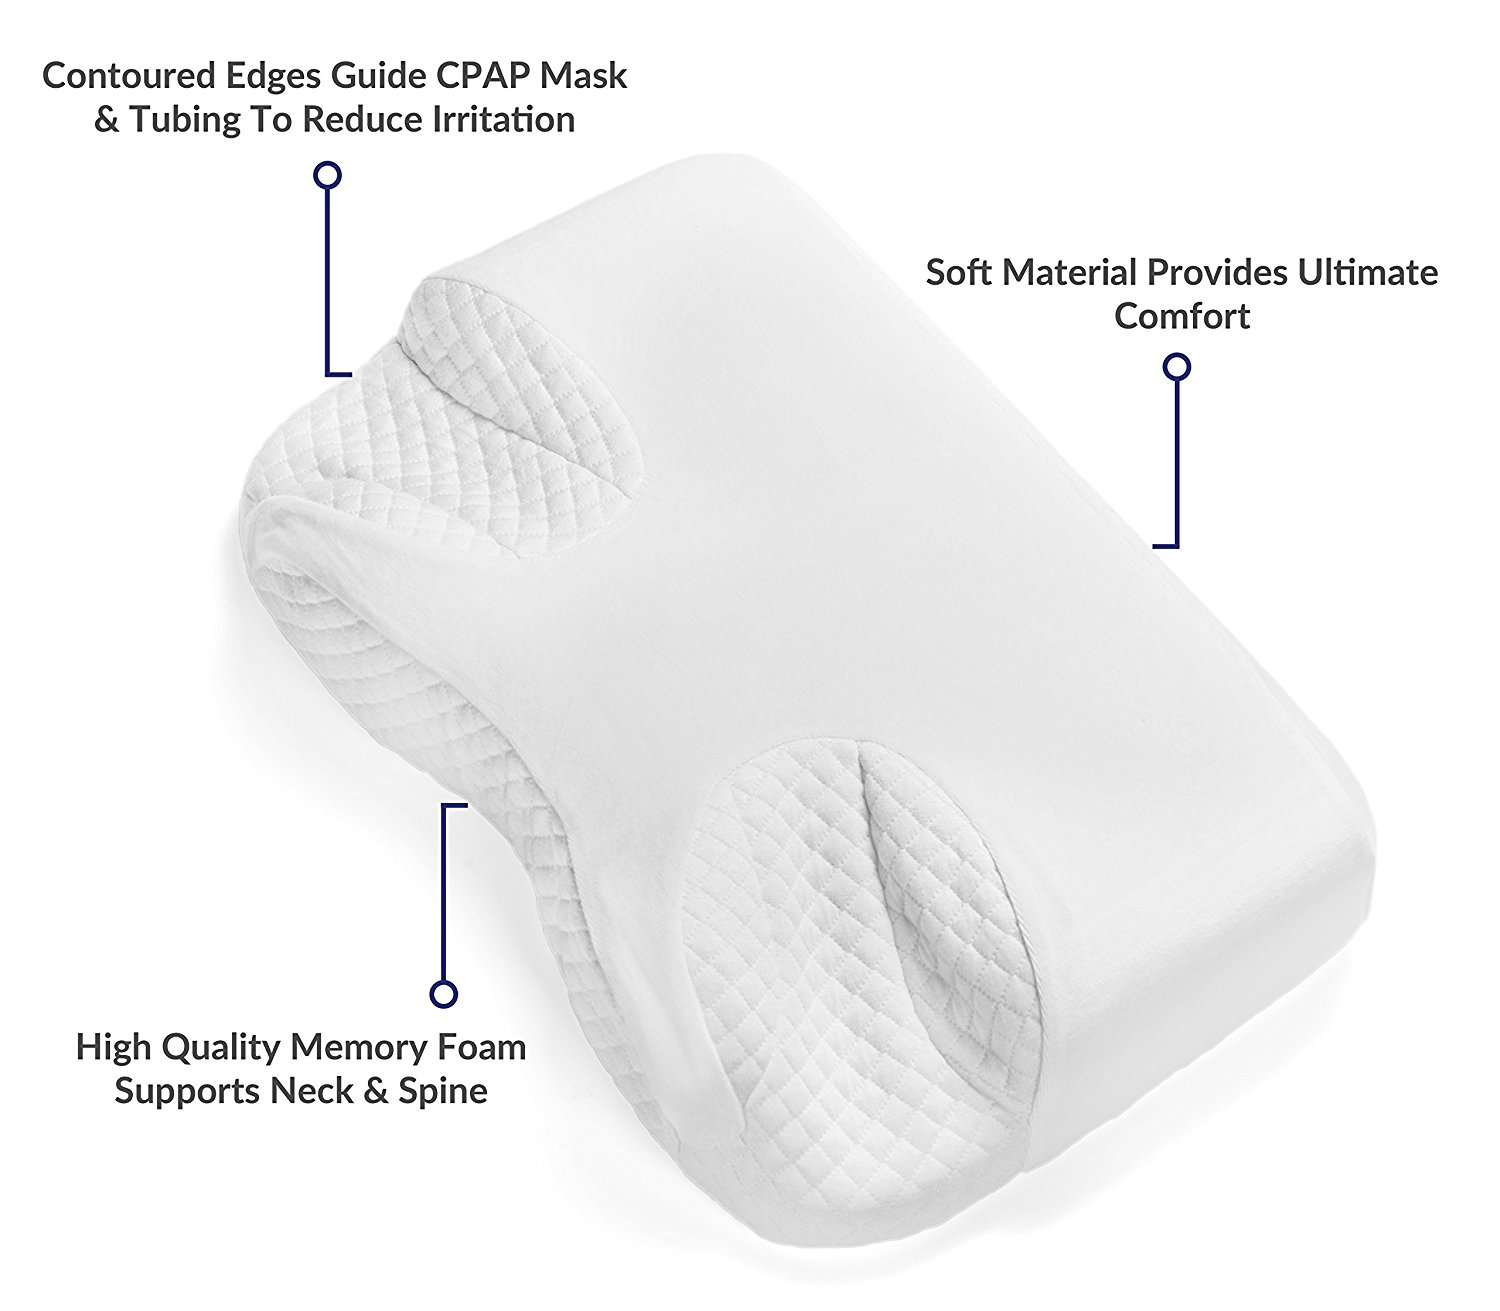 CPAP Memory Foam Pillow By GoodSleep - For BiPAP, APAP & CPAP Mask Users